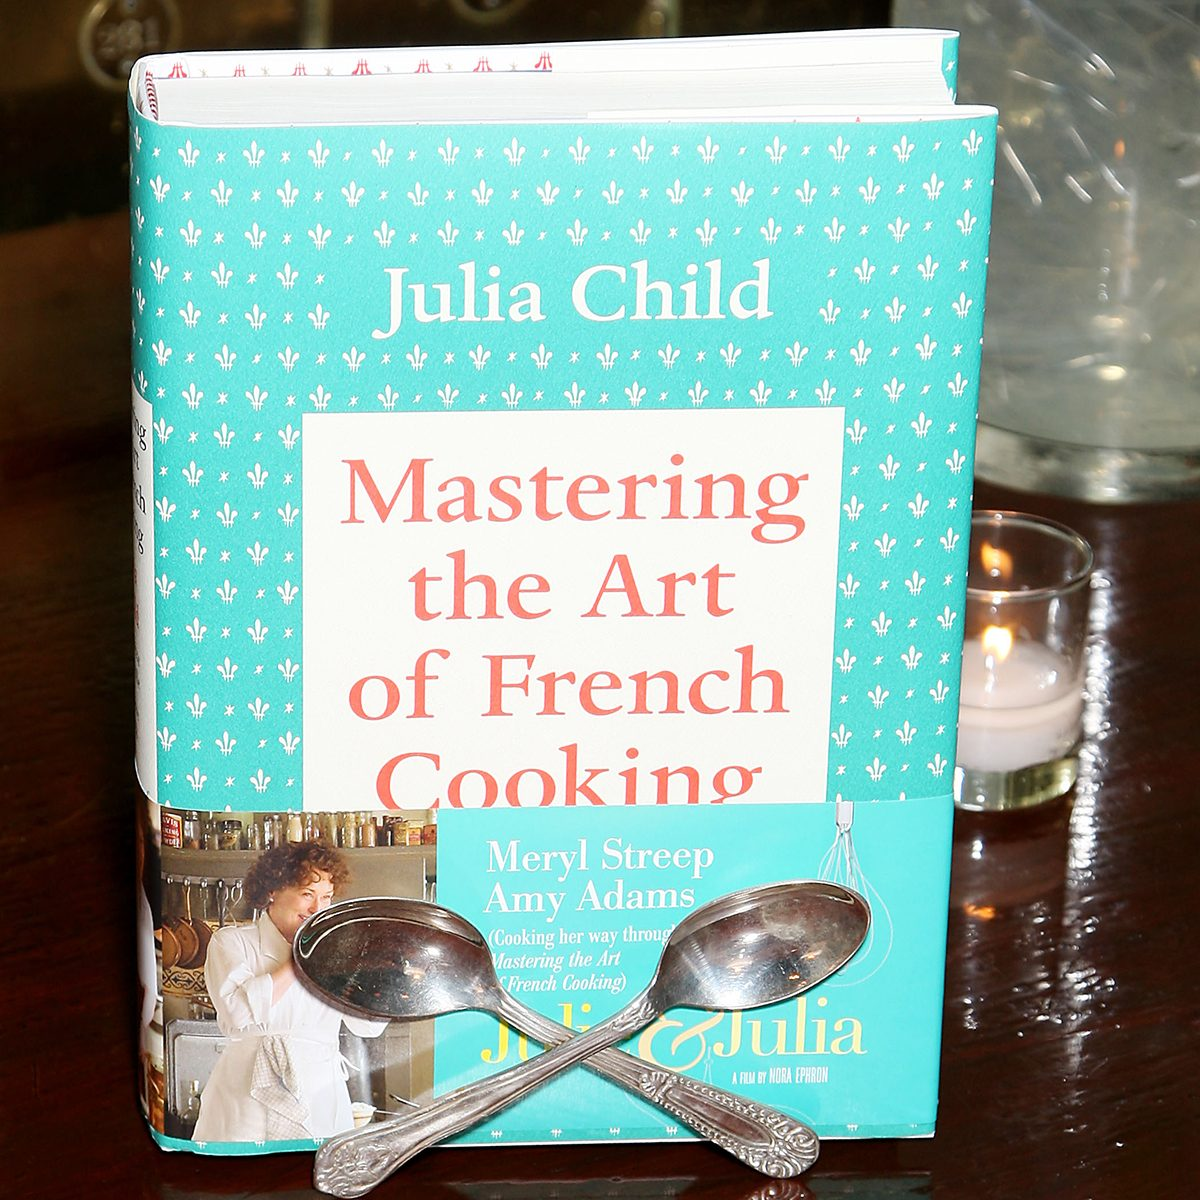 'Mastering the Art of French Cooking' book by Julia Child